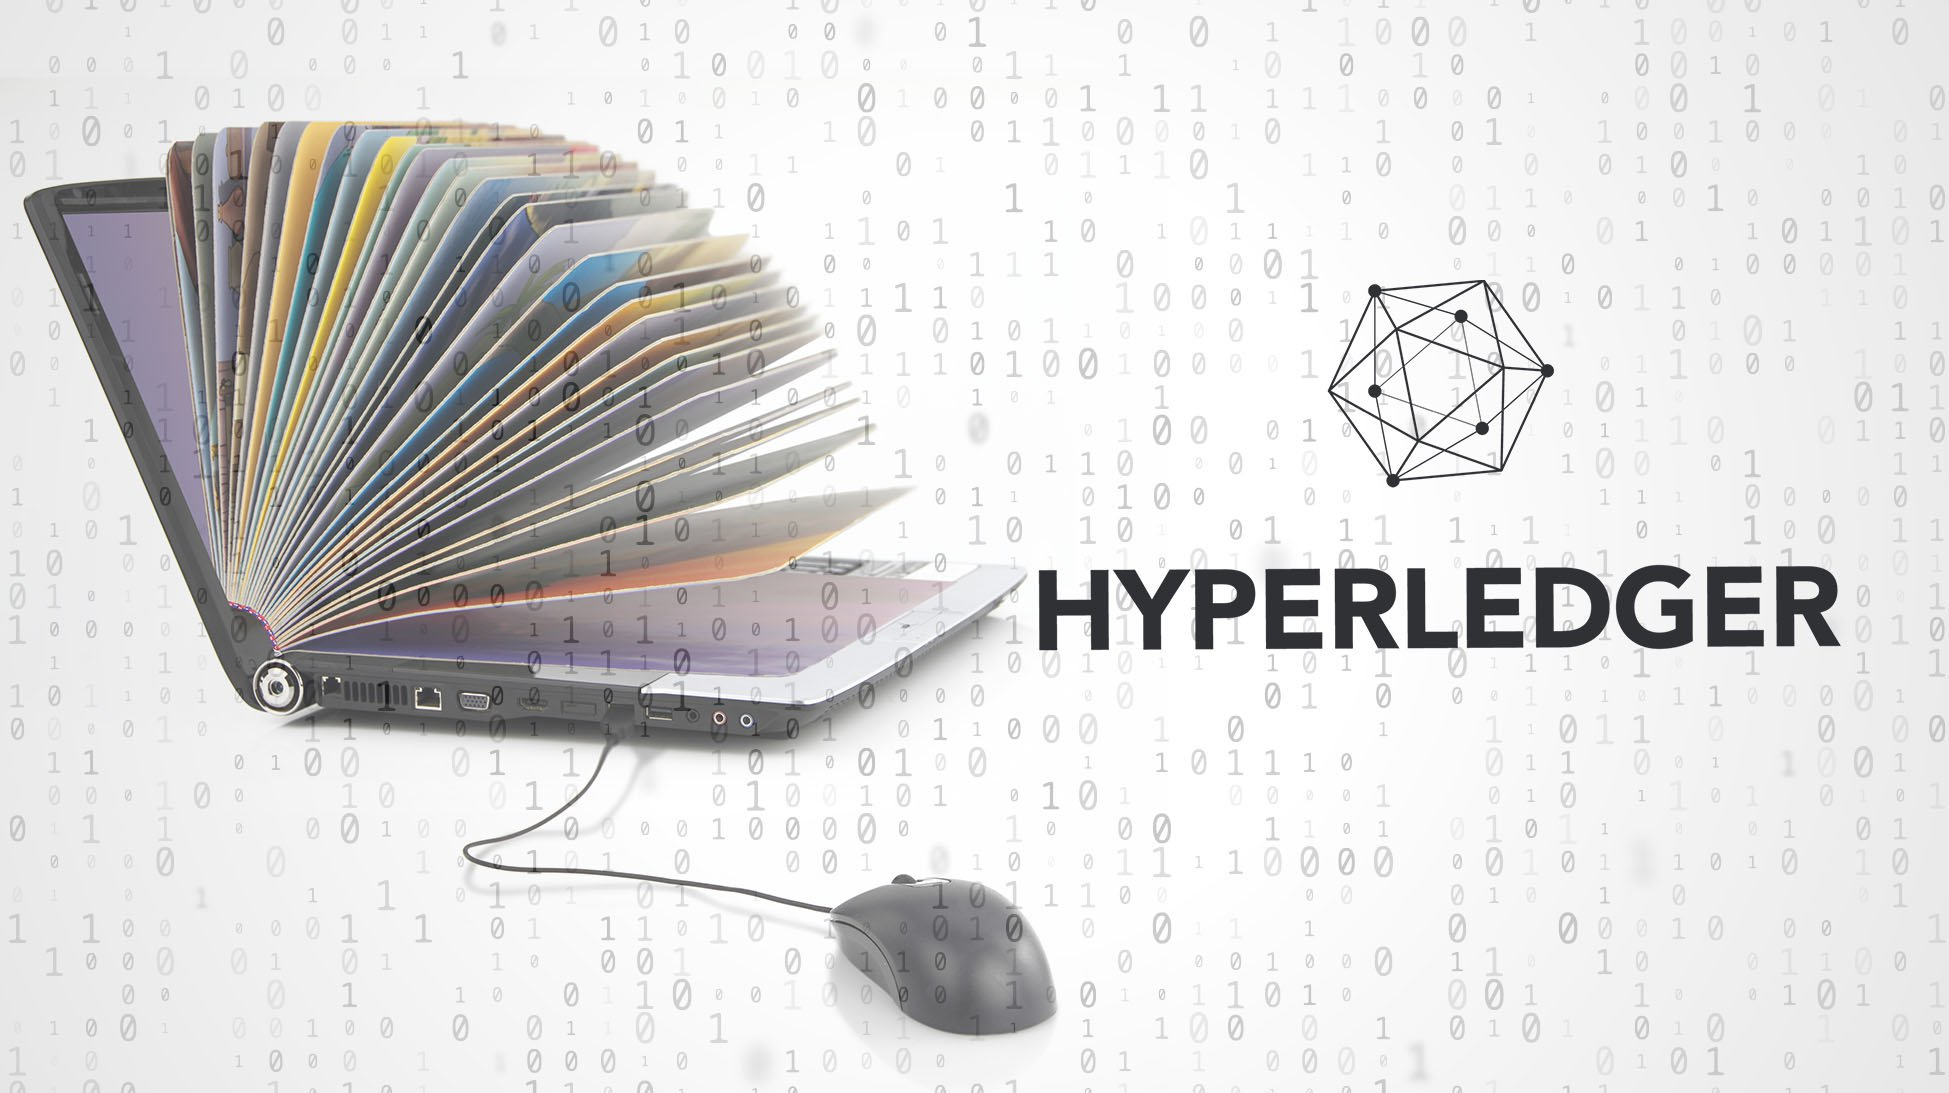 Hyperledger and Linux to Offer a Massive Open Online Blockchain Course